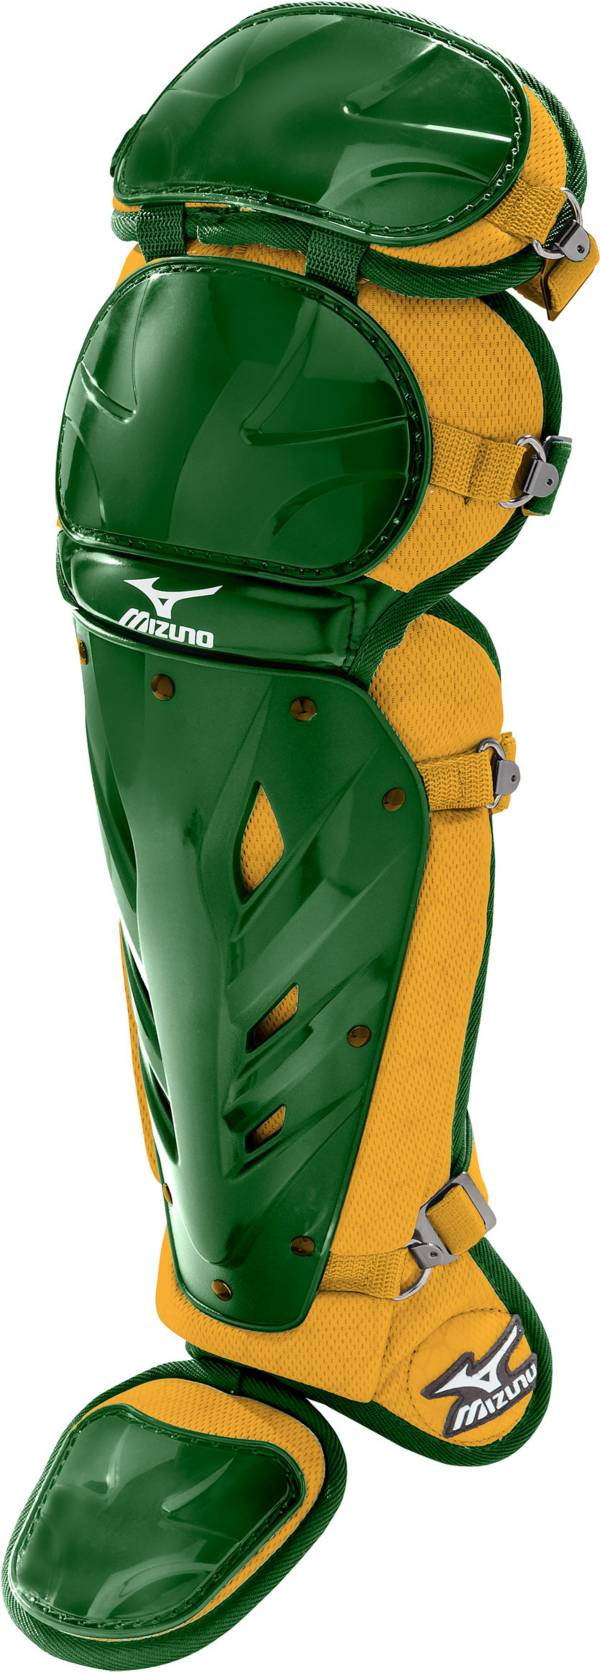 Mizuno Women's 15'' MSSGW1600 Fastpitch Catcher's Leg Guards product image